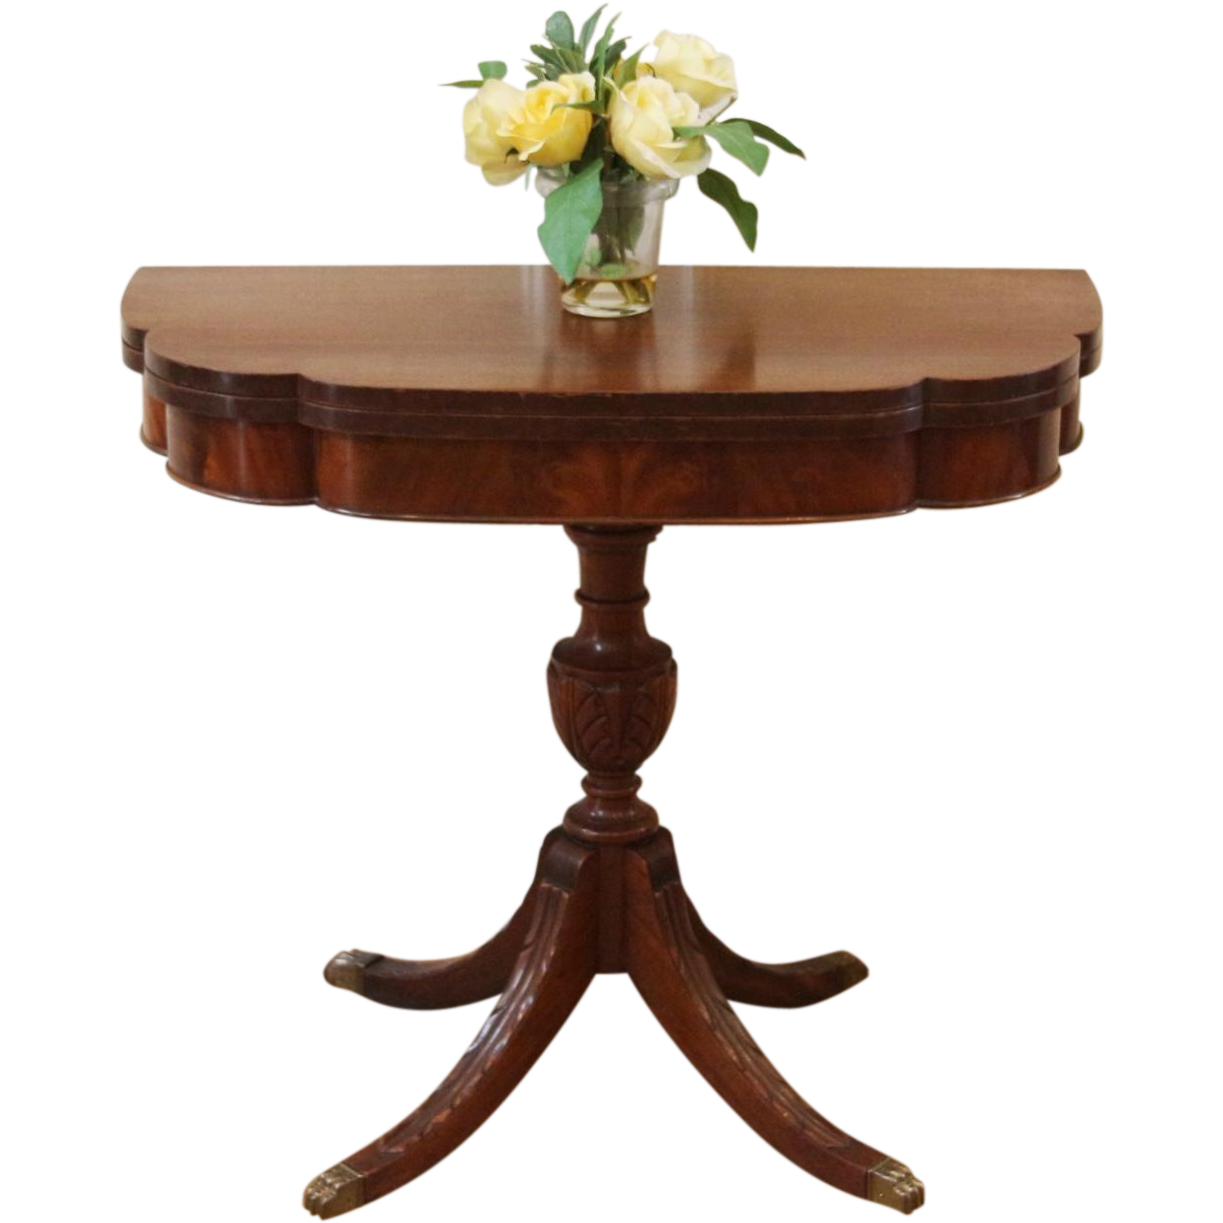 Details about 48 inch round formal duncan phyfe rosewood dining table - Vintage American Duncan Phyfe Mahogany Fold Top Console Game Table